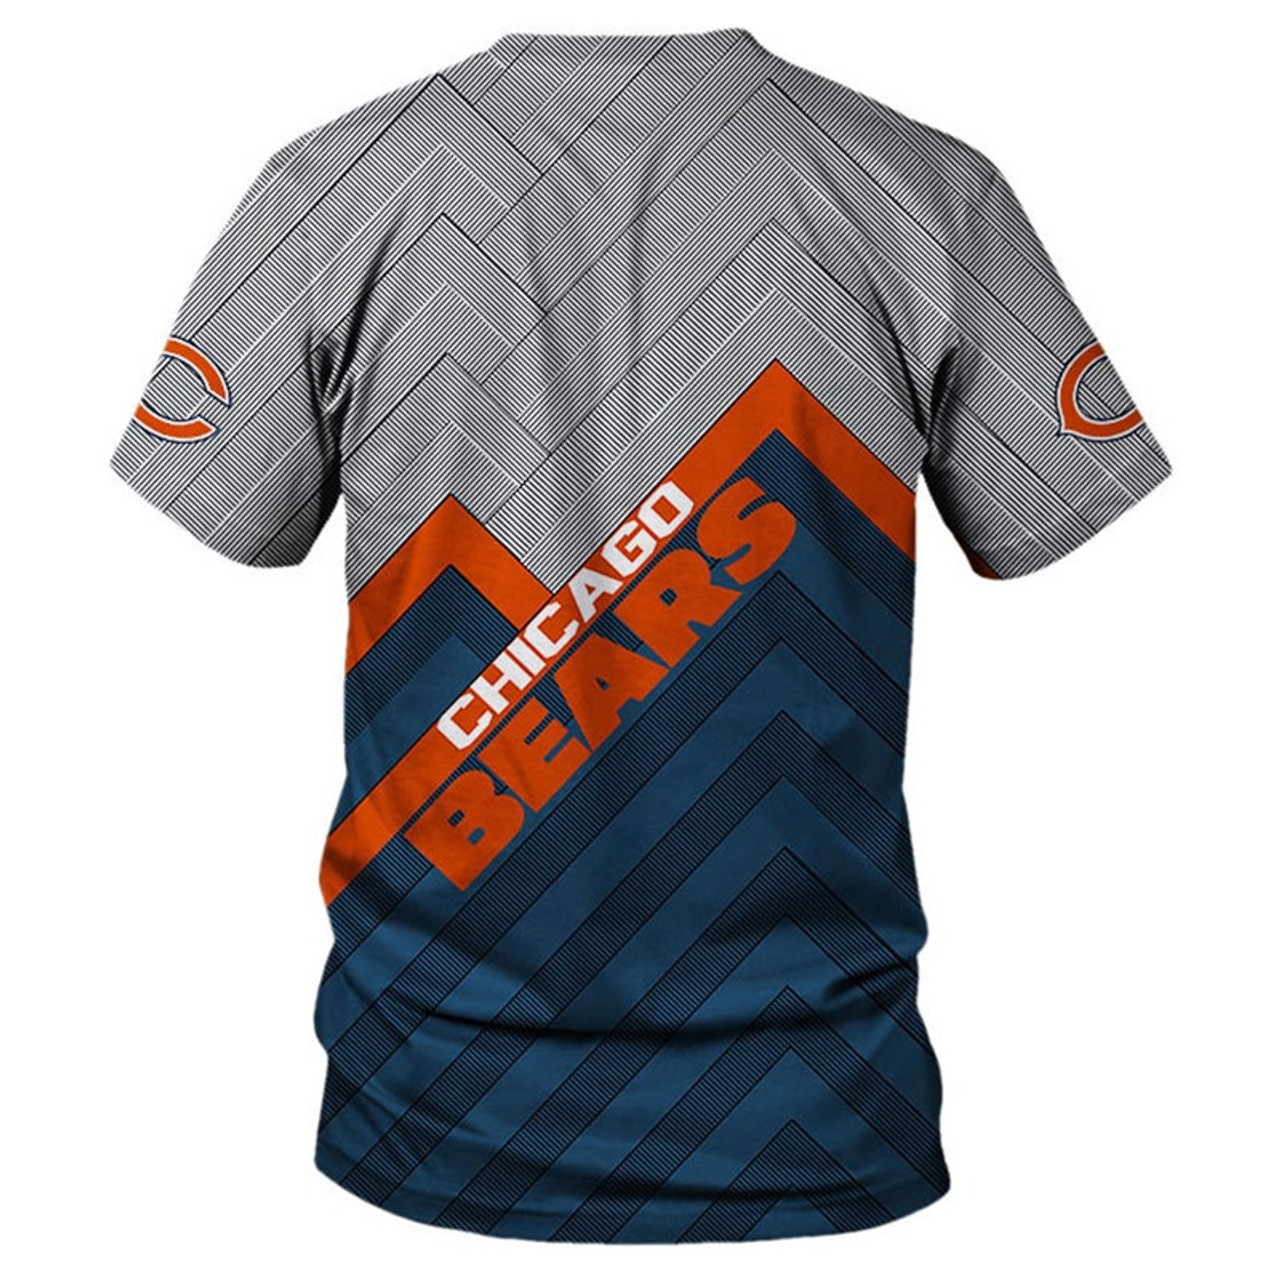 **(NEW-OFFICIAL-N.F.L.CHICAGO-BEARS-TEAM-TEES/NICE-3D-CUSTOM-BEARS-LOGOS & OFFICIAL-BEARS-CLASSIC-TEAM-COLORS/NICE-3D-DETAILED-GRAPHIC-PRINTED-DOUBLE-SIDED/ALL-OVER-ENTIRE-TEE-SHIRT-PRINTED-DESIGN/TRENDY-PREMIUM-N.F.L.CHICAGO-BEARS-TEES)**